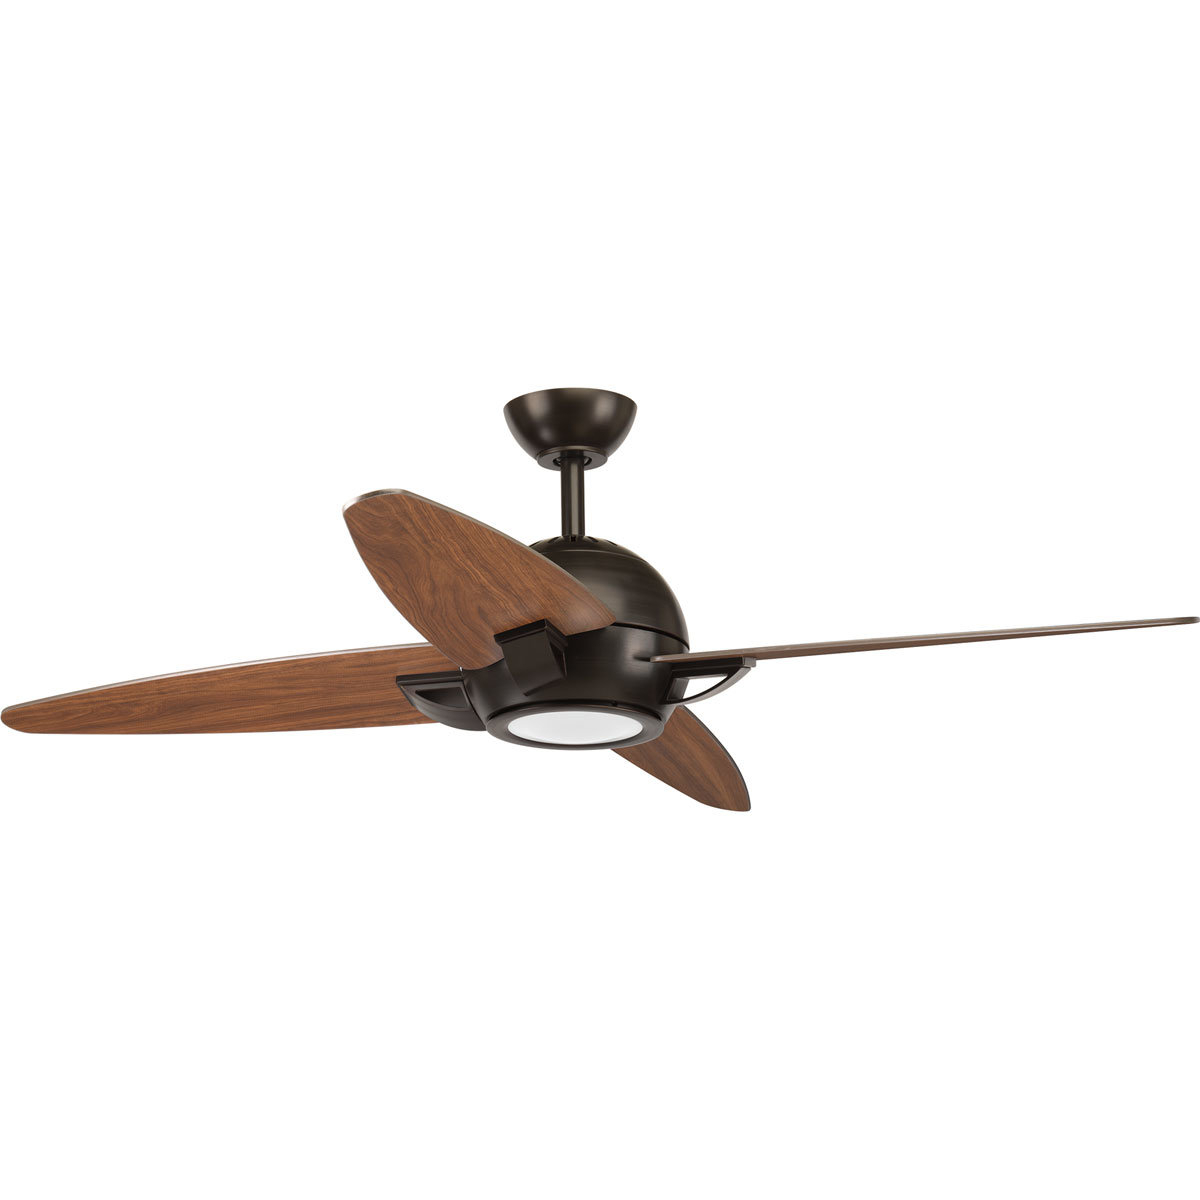 "2020 54"" Dirks 5 Blade Led Ceiling Fan With Remote With Regard To Wilburton 5 Blade Ceiling Fans With Remote (Gallery 7 of 20)"